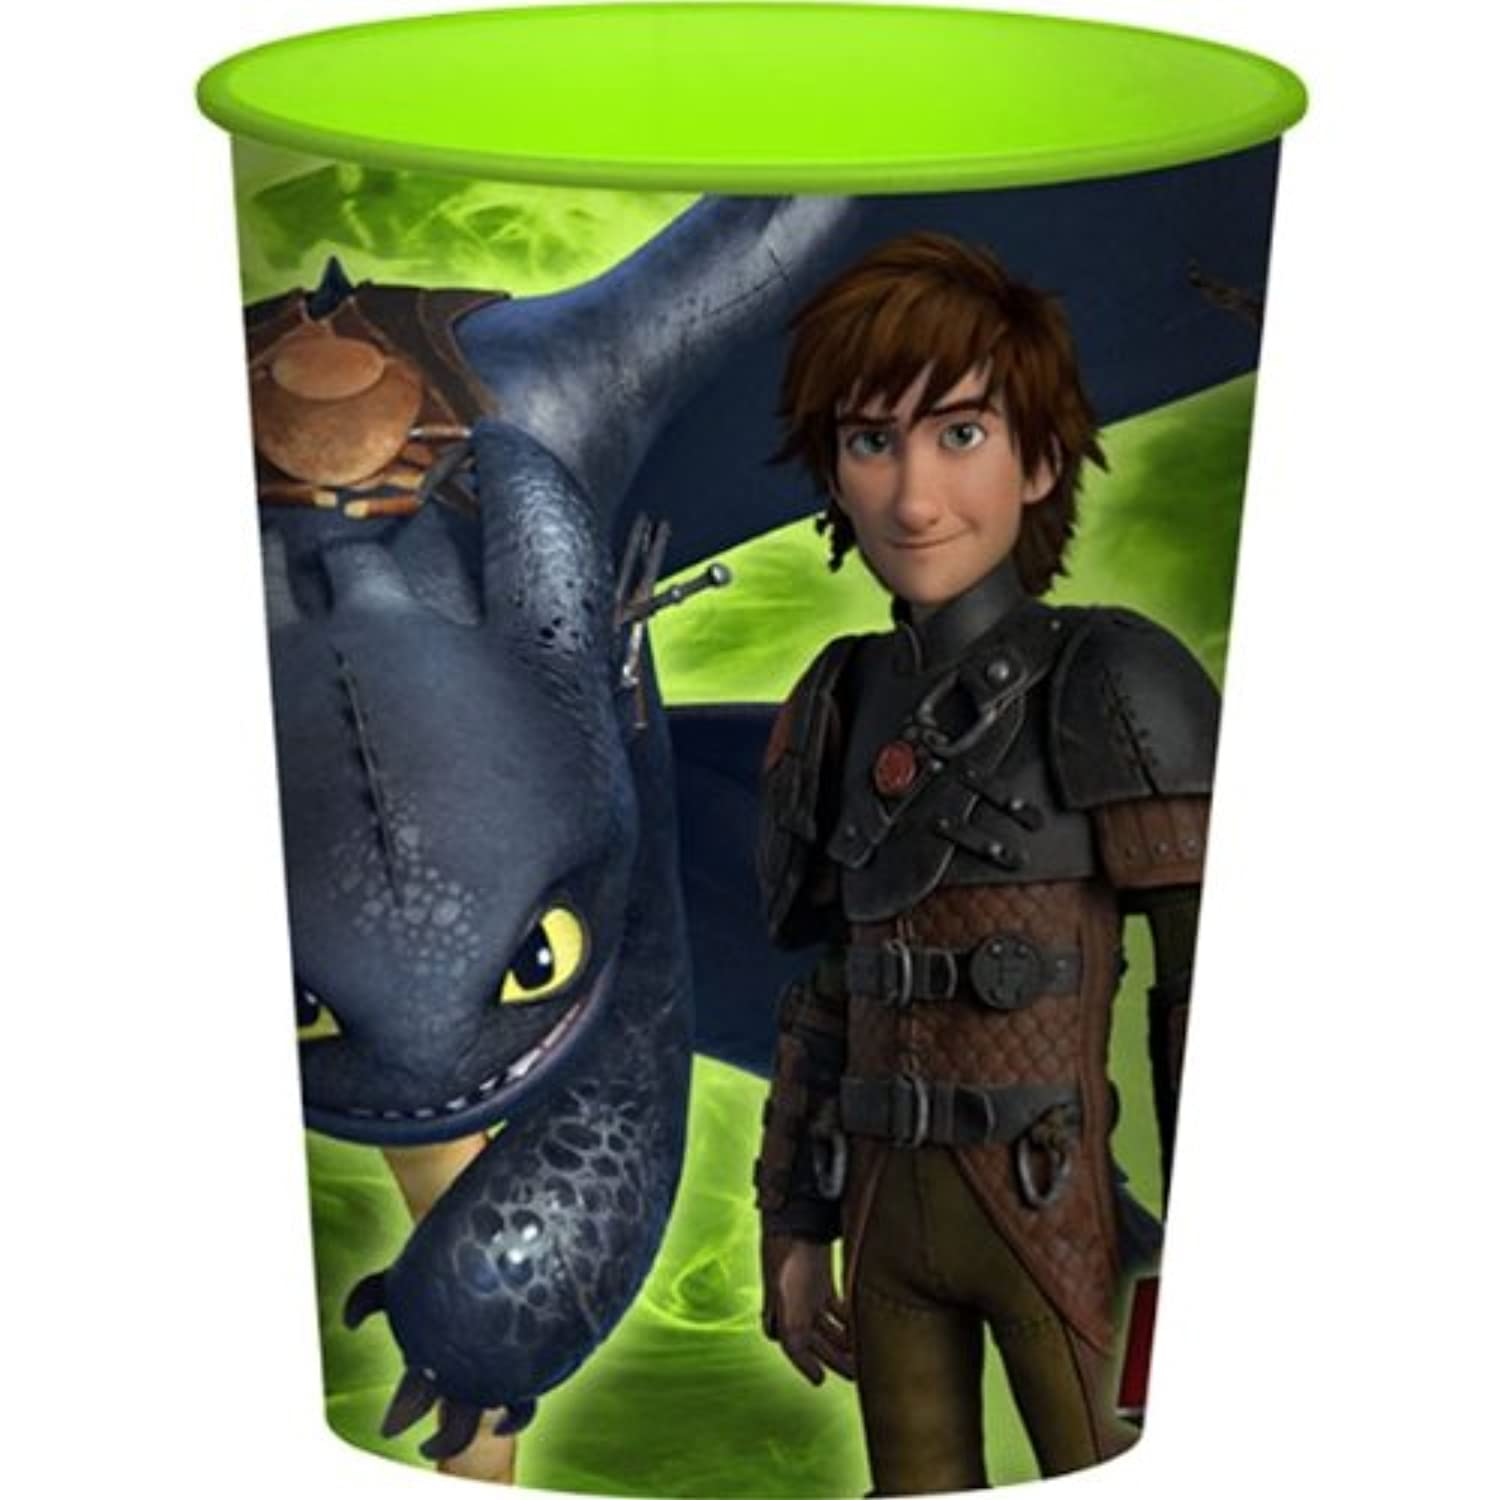 How to Train Your Dragon 2 16oz Stadium Cups 12 Pack by DreamWorks How to Train Your Dragon